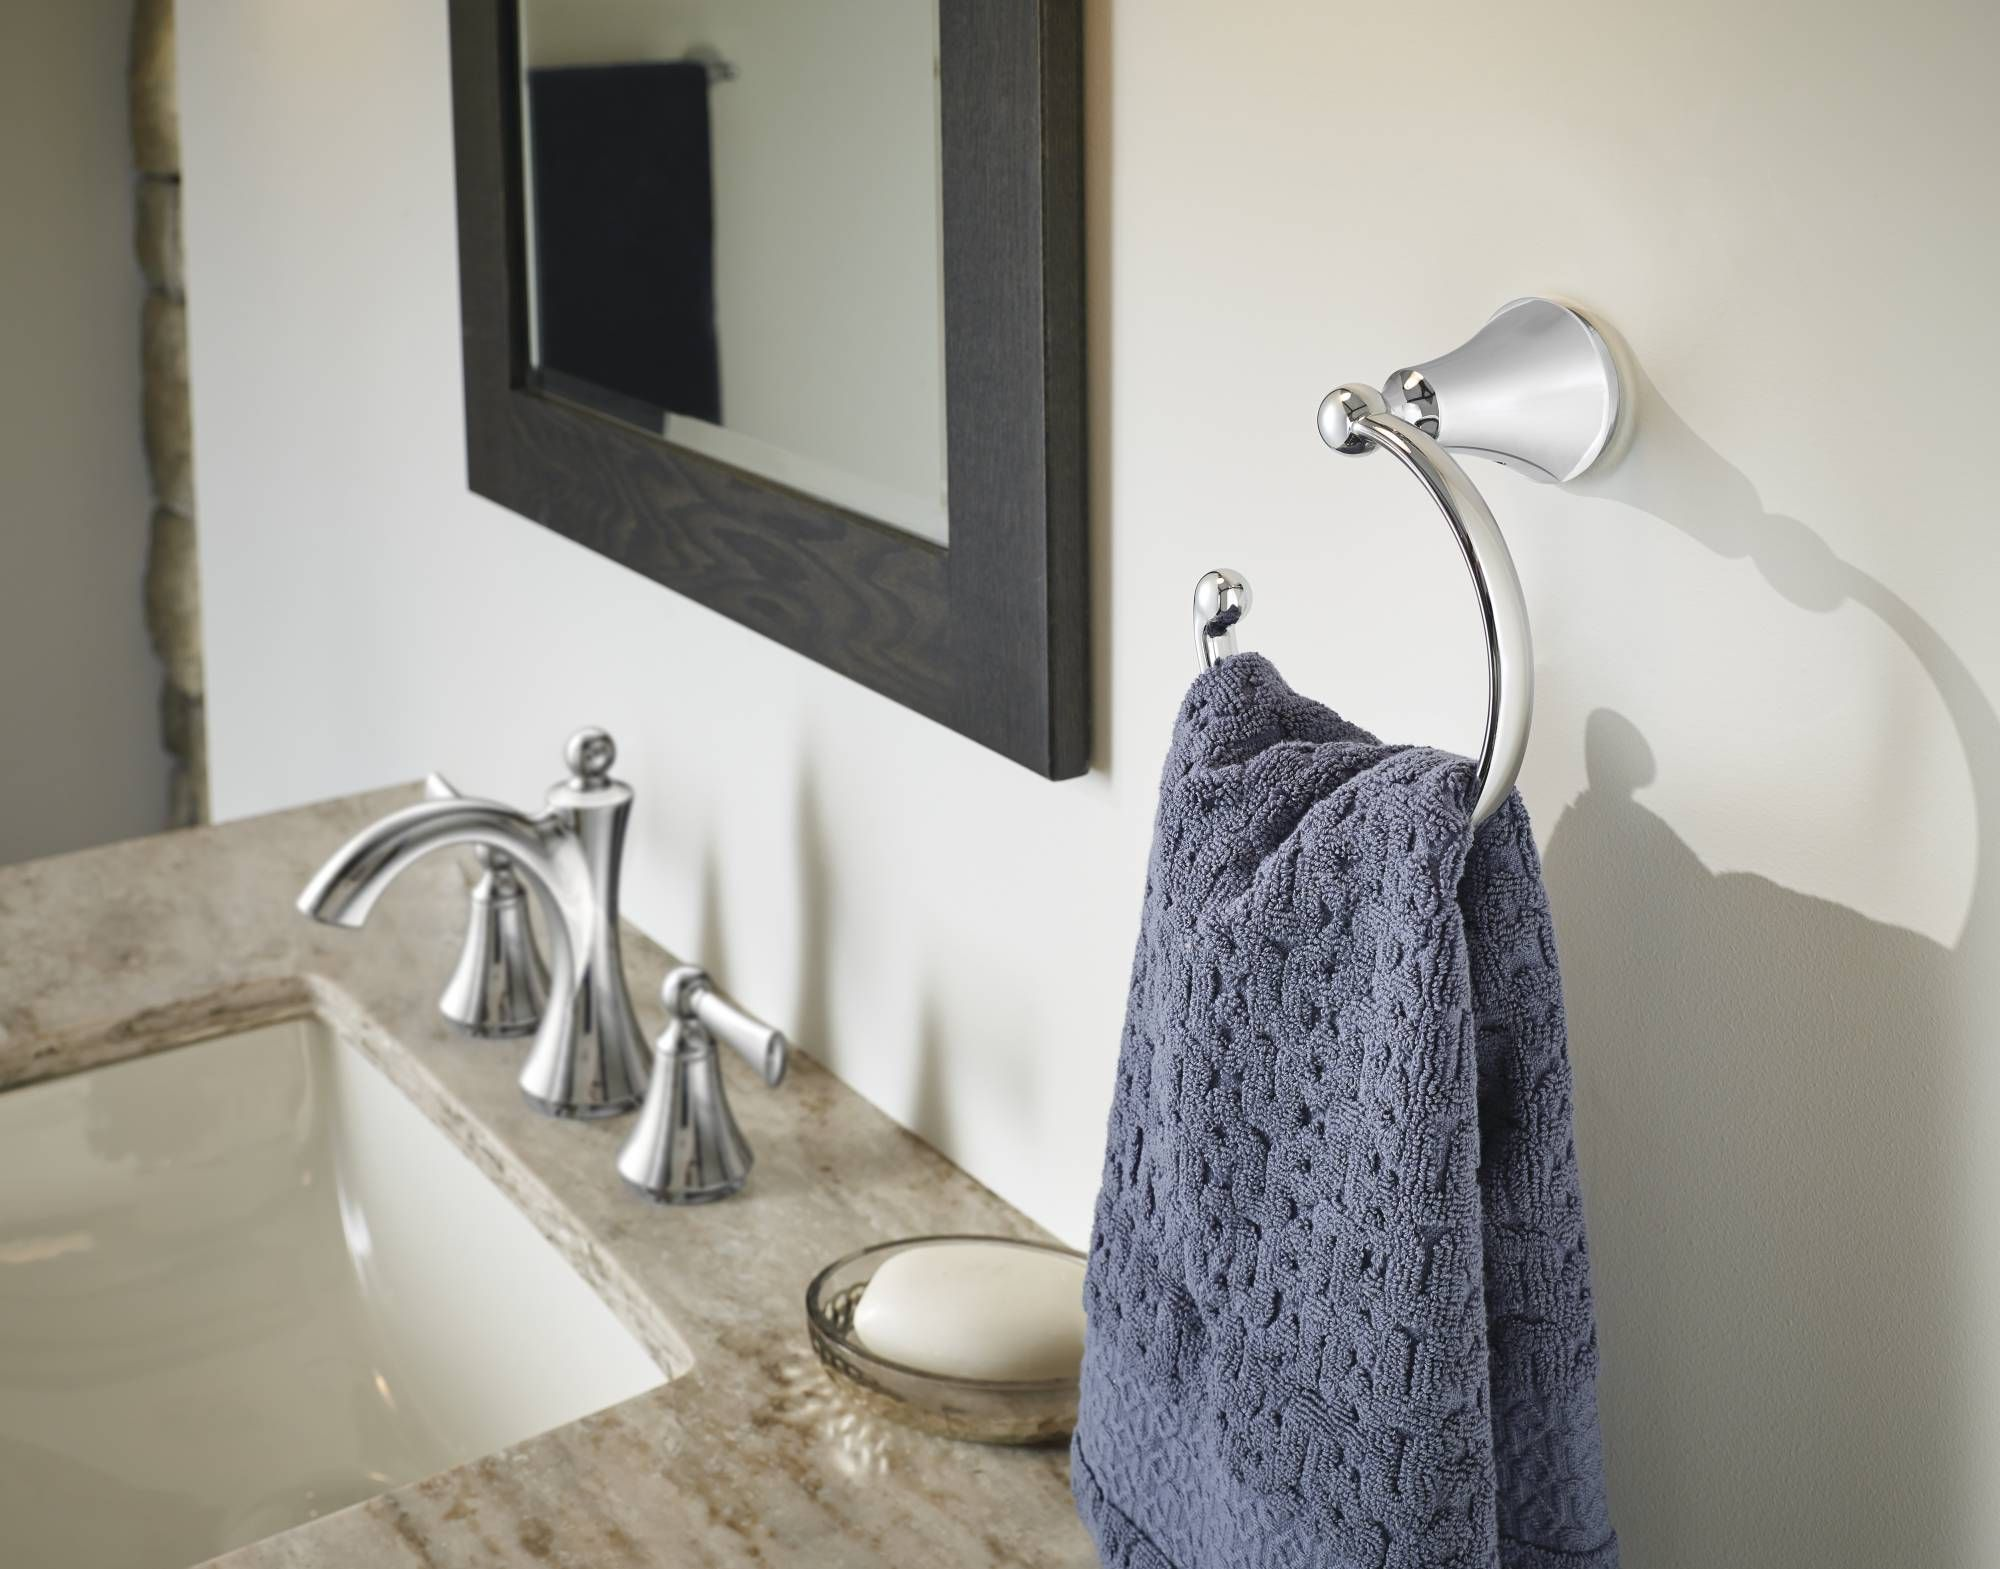 Wynford chrome two-handle bathroom faucet and towel ring | Home ...